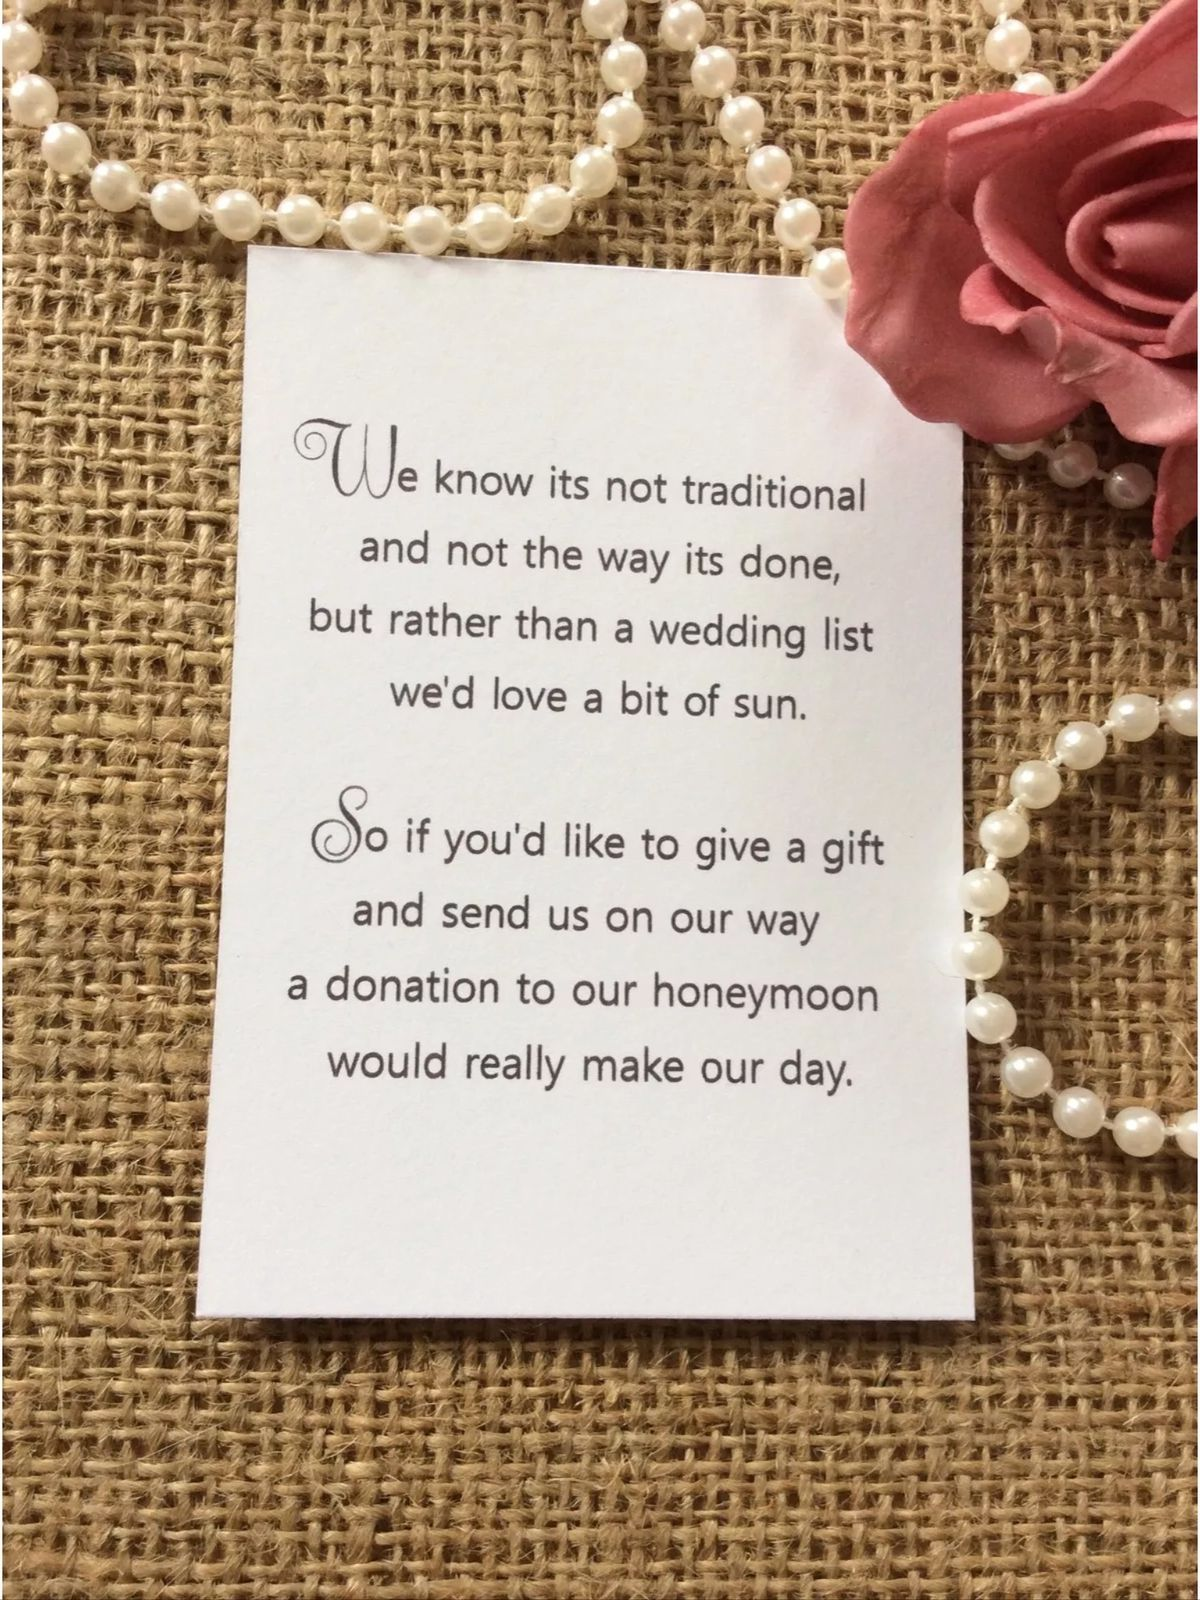 25 50 Wedding Gift Money Poem Small Cards Asking For Cash Invitations In Home Furniture Diy Supplies Ebay